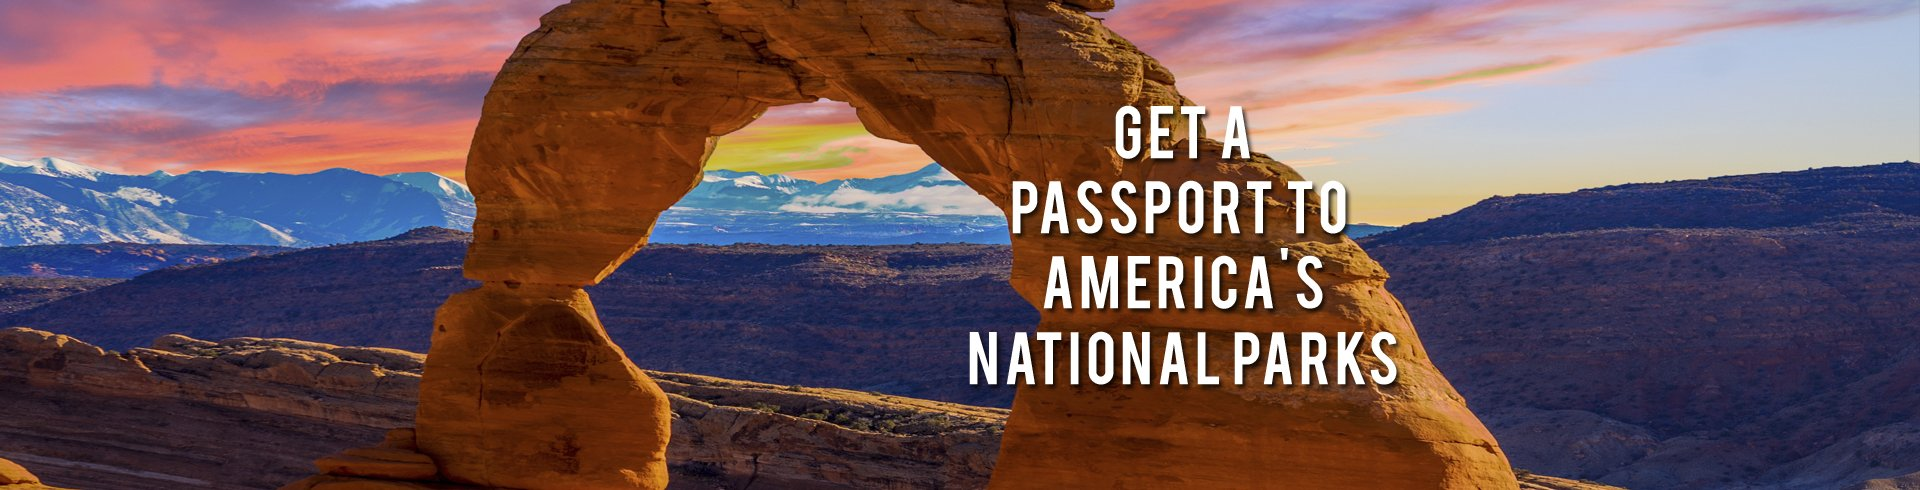 Get A Passport To America's National Parks Rc Willey Furniture Store